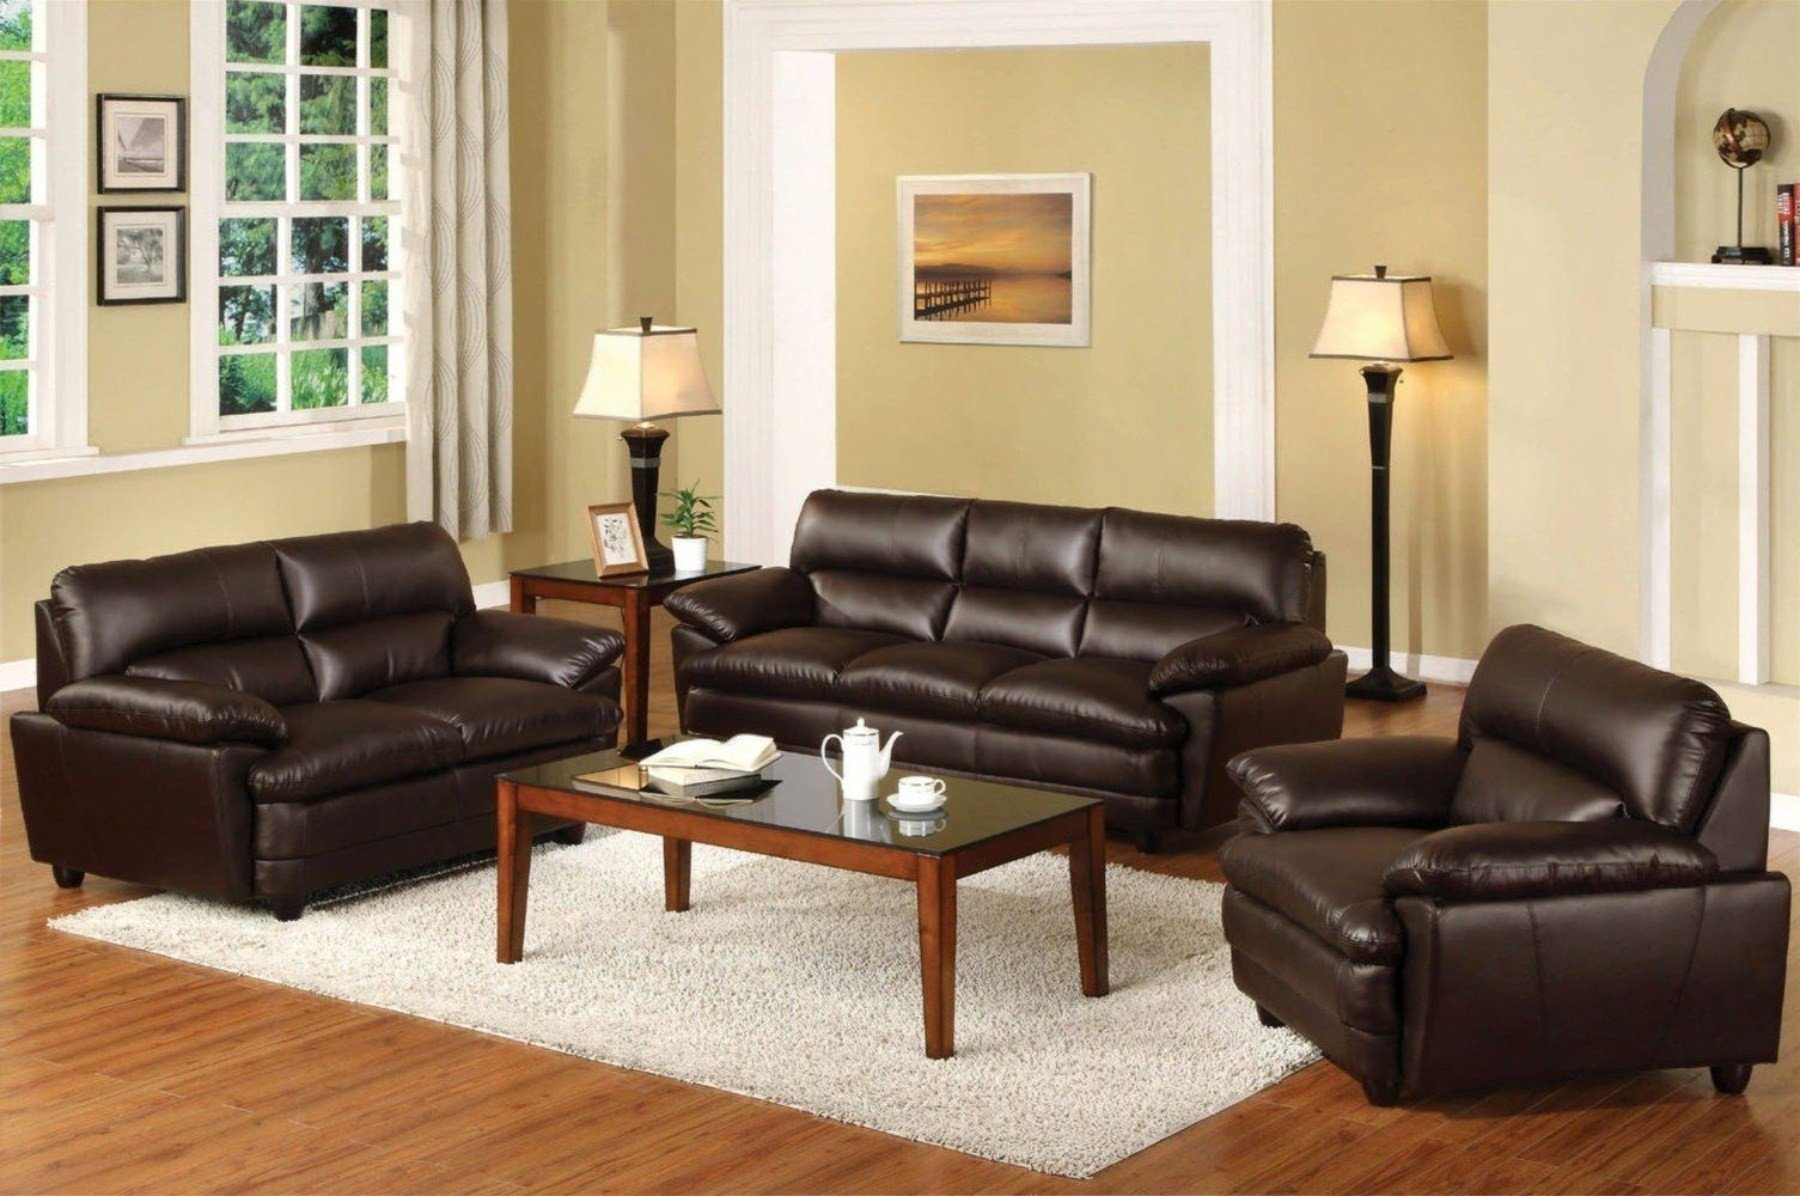 Brown sofa Living Room Decor Elegant Brown Couch Blue Rug Innovative Rugs Design